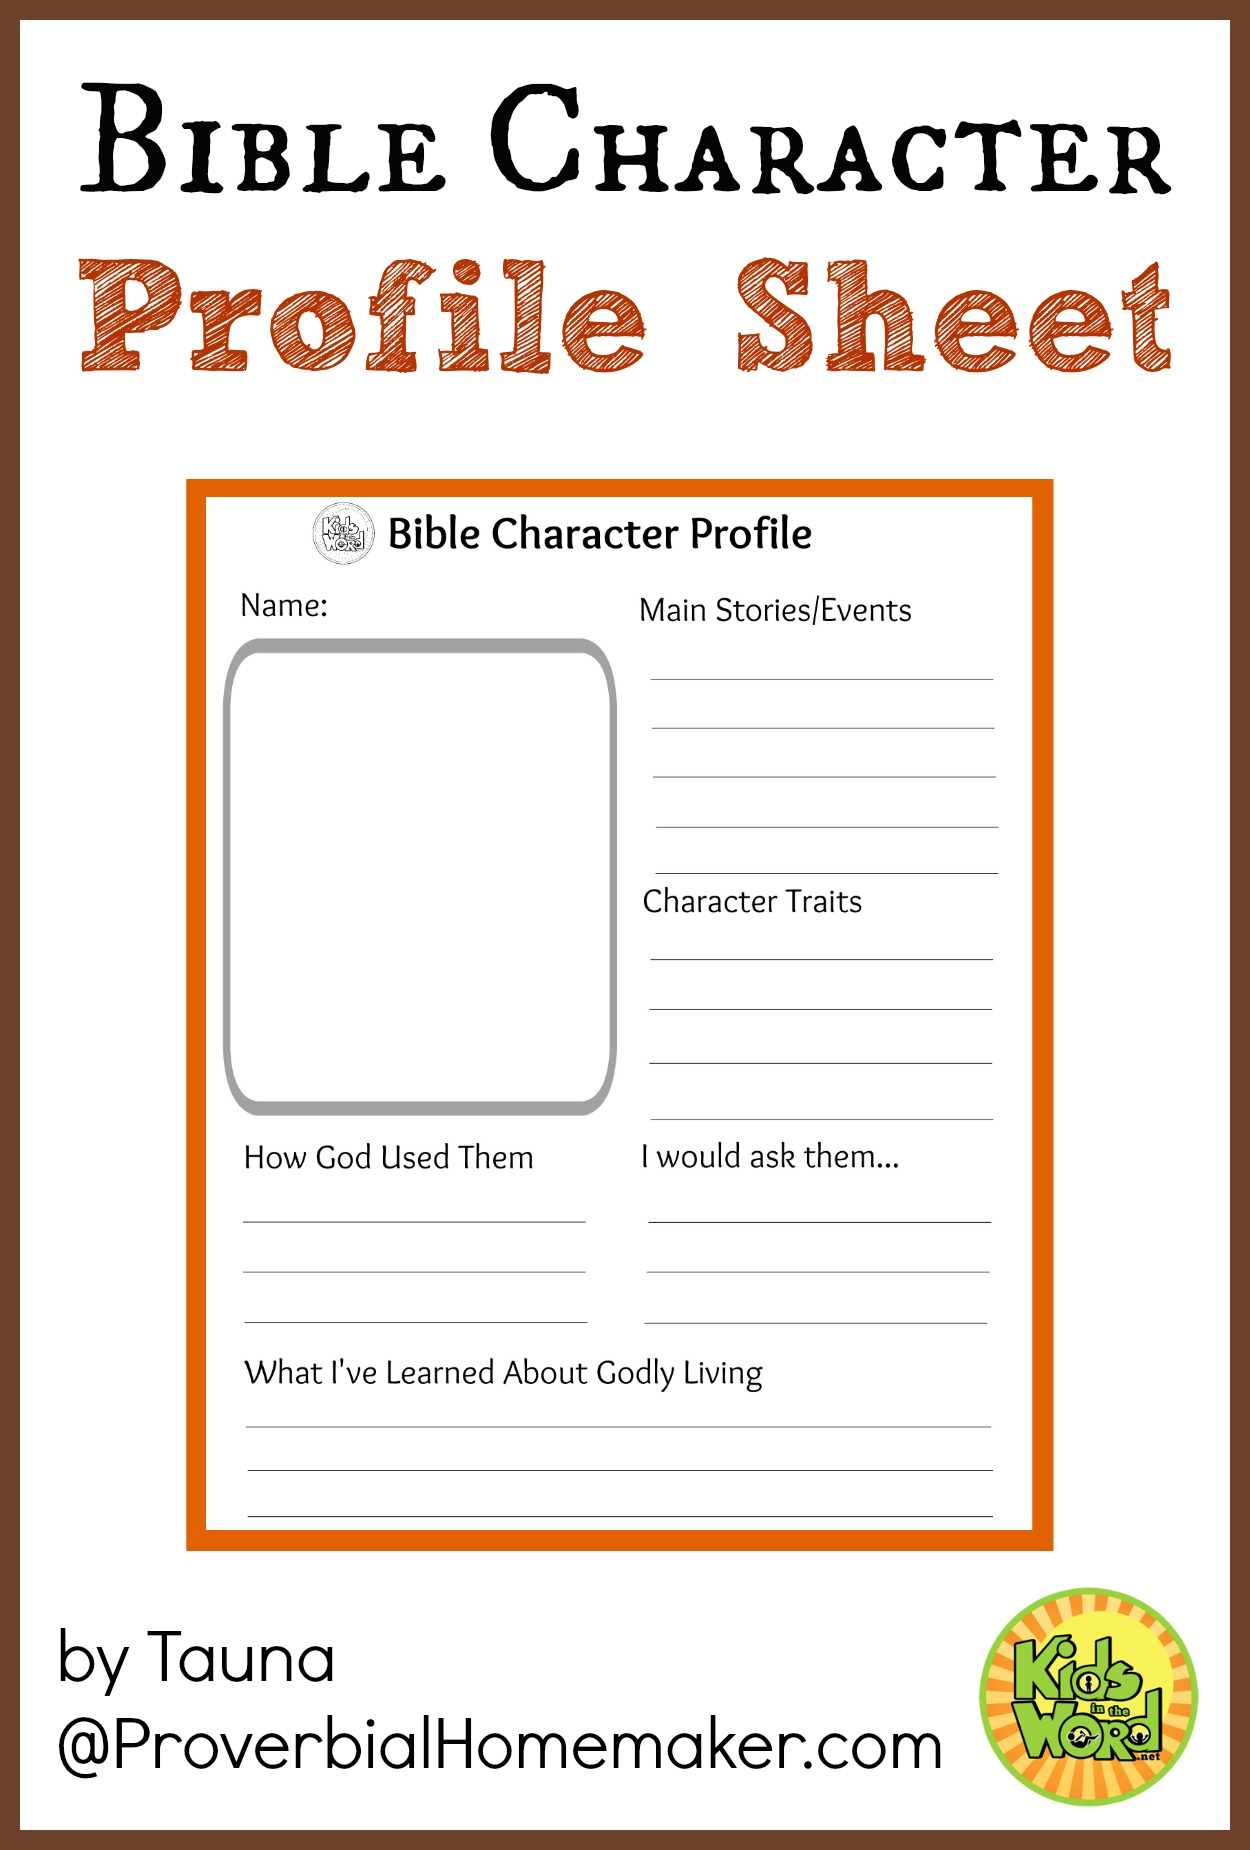 Worksheets Character Profile Worksheet bible character profile sheet study characters with your kids using this sheet